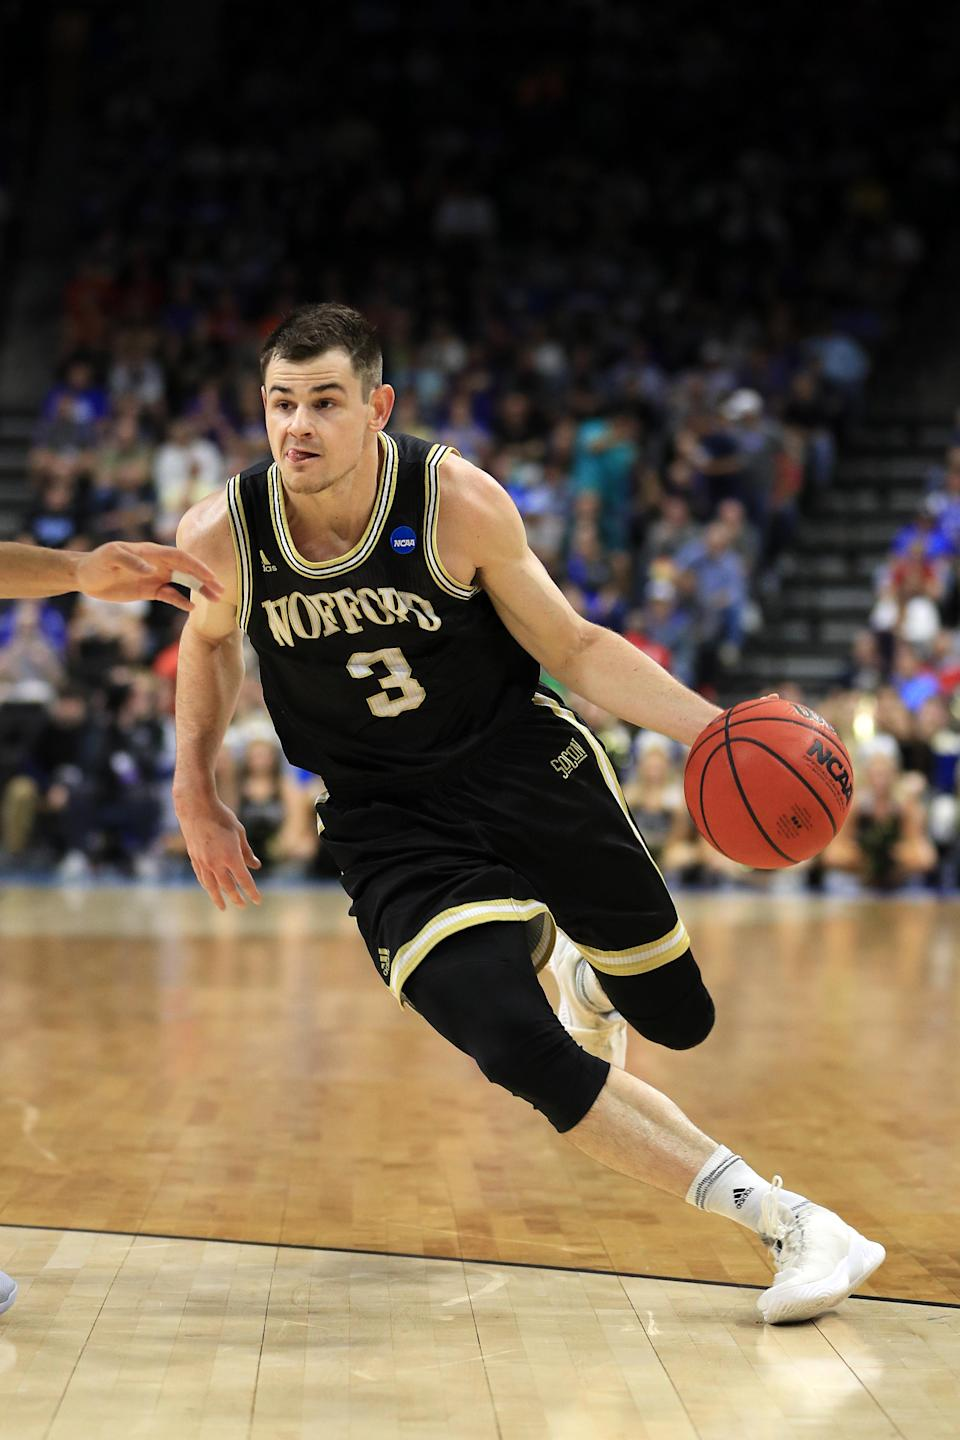 <p>Fletcher Magee #3 of the Wofford Terriers drives against the Kentucky Wildcats during the first half of the game in the second round of the 2019 NCAA Men's Basketball Tournament at Vystar Memorial Arena on March 23, 2019 in Jacksonville, Florida. (Photo by Mike Ehrmann/Getty Images) </p>